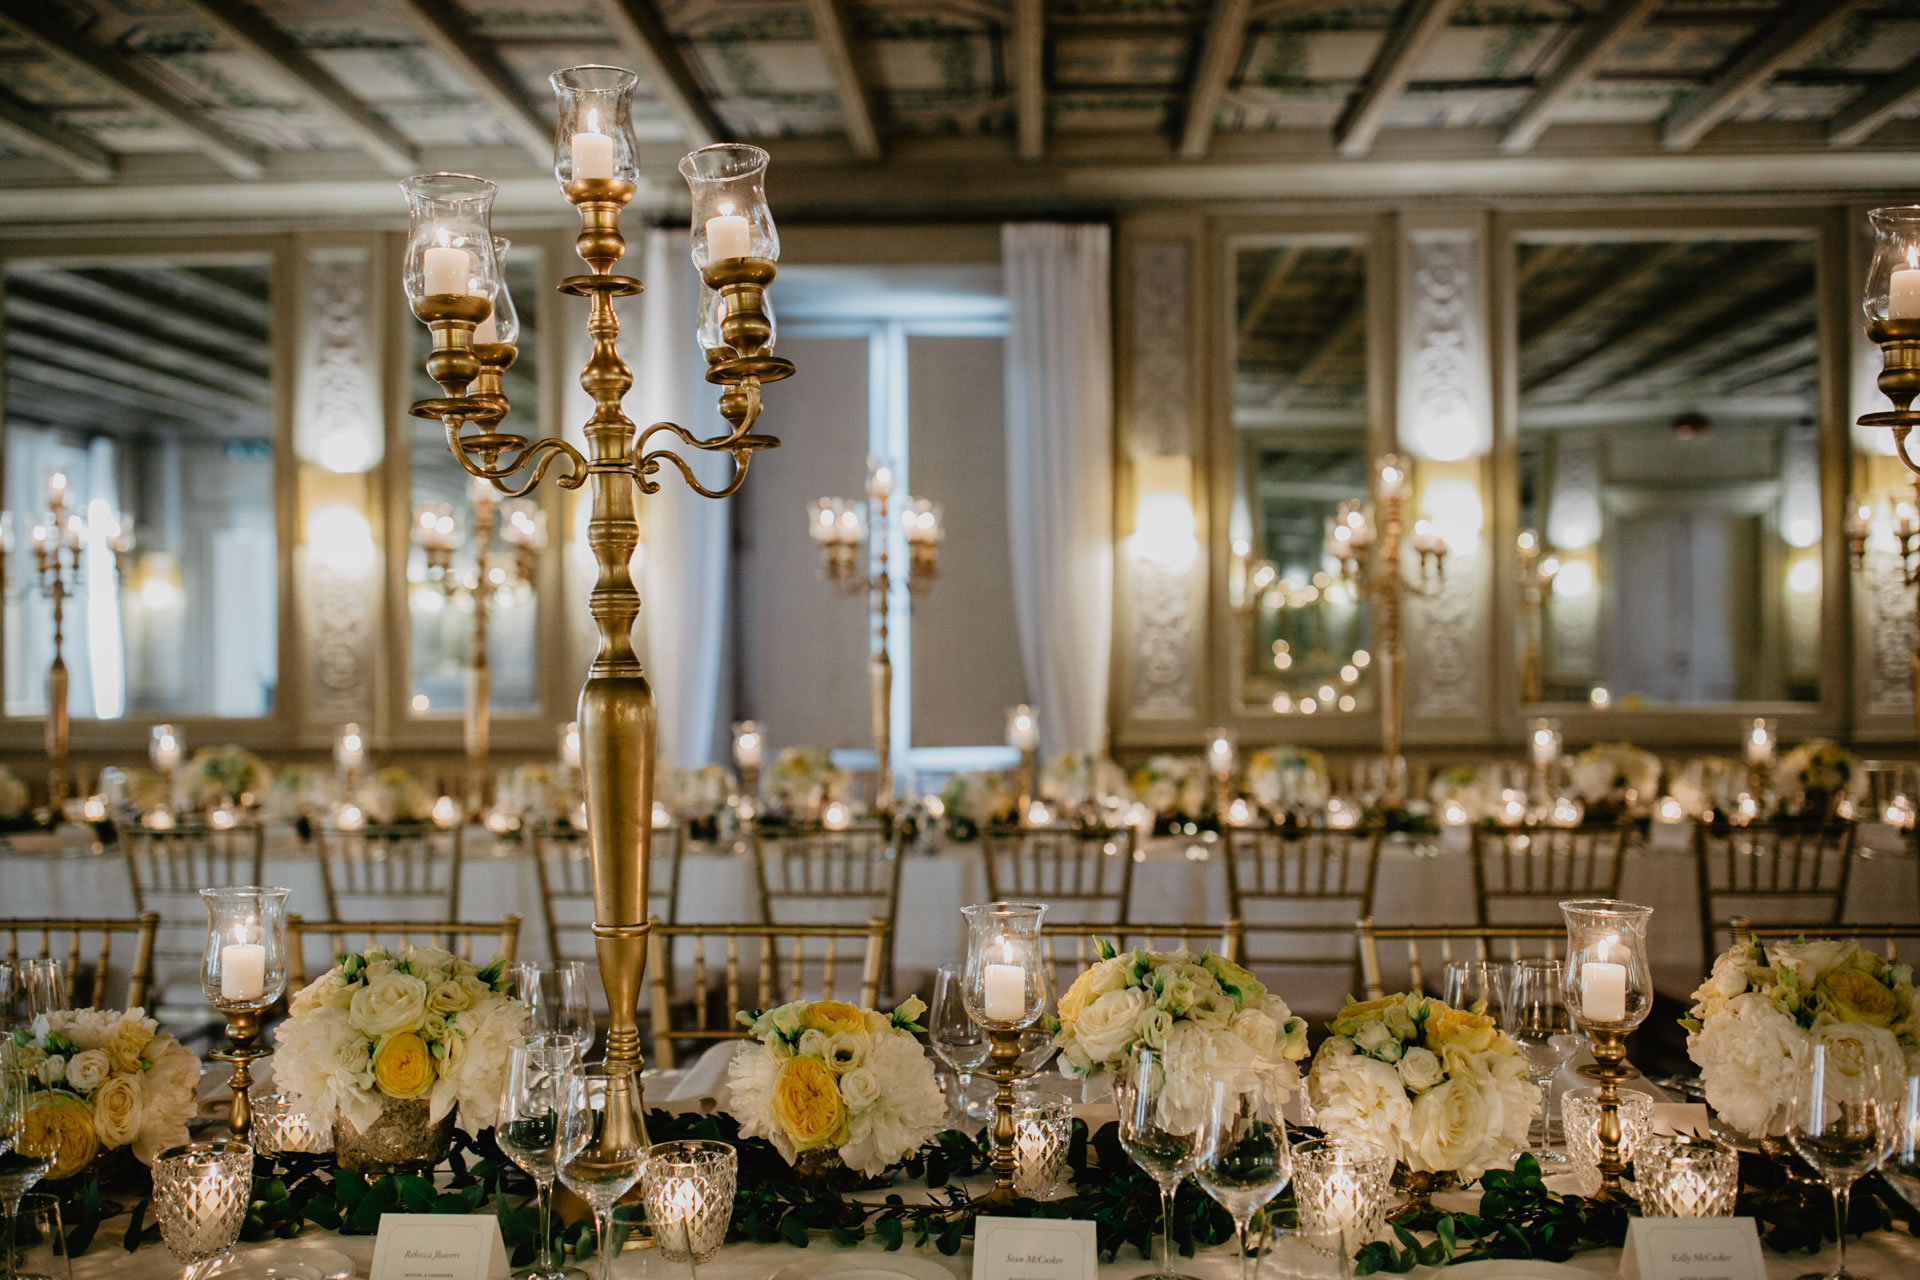 - 37 :: A breath-taking wedding in Rome, the eternal city :: Luxury wedding photography - 36 ::  - 37